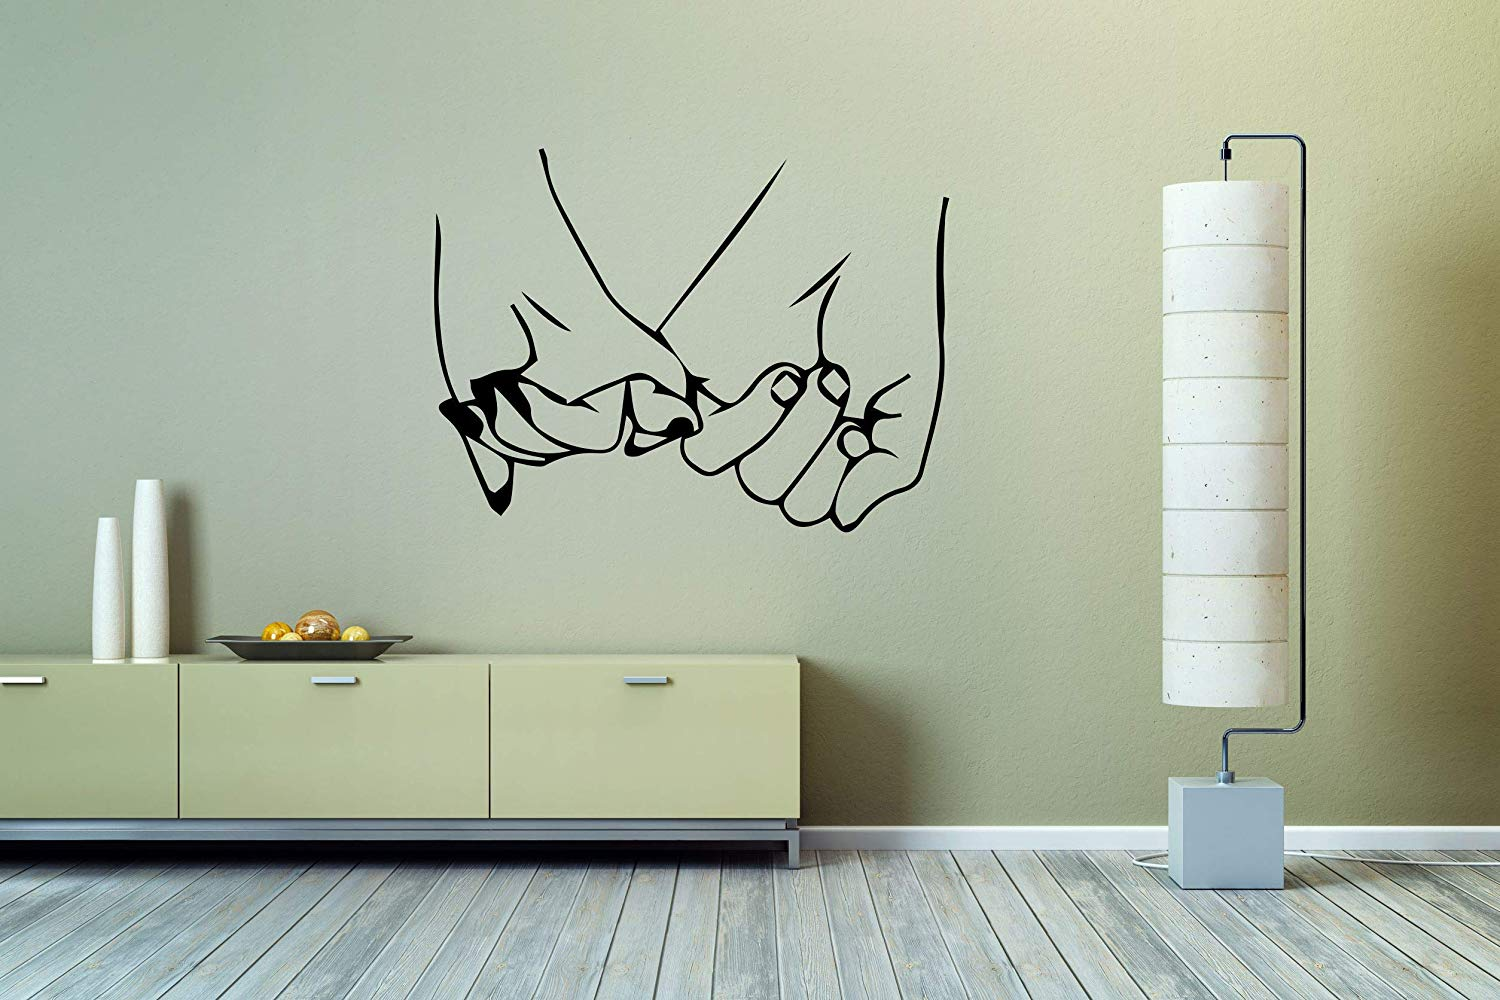 Amazoncom Vinyl Sticker Holding Hands Man Girl Woman Mural Decal 1500x1000